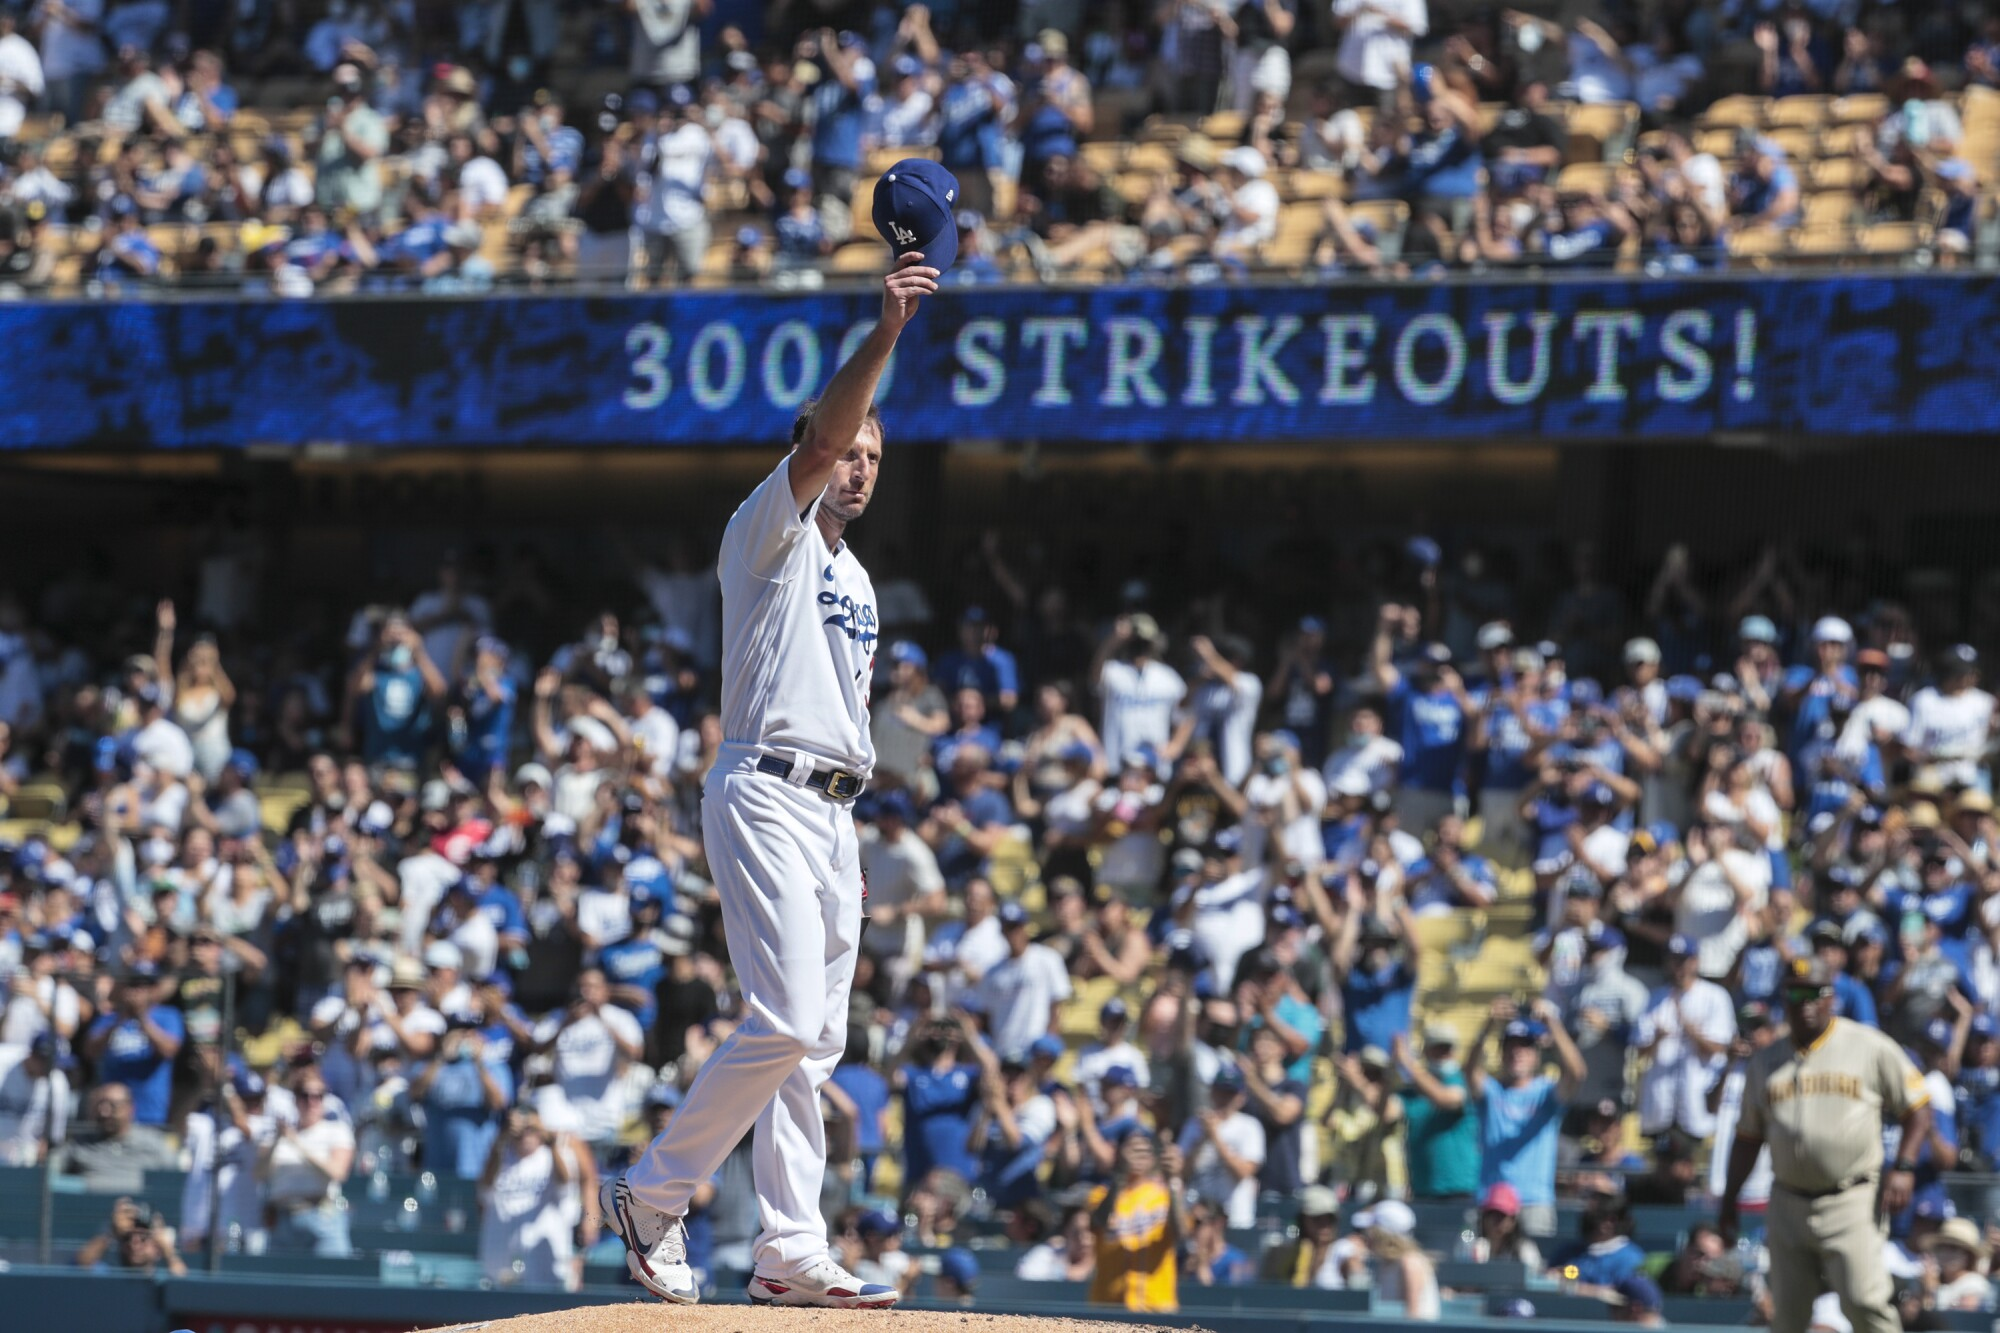 Los Angeles Dodgers starting pitcher Max Scherzer (31) salutes the crowd after his 3,000th career strikeout